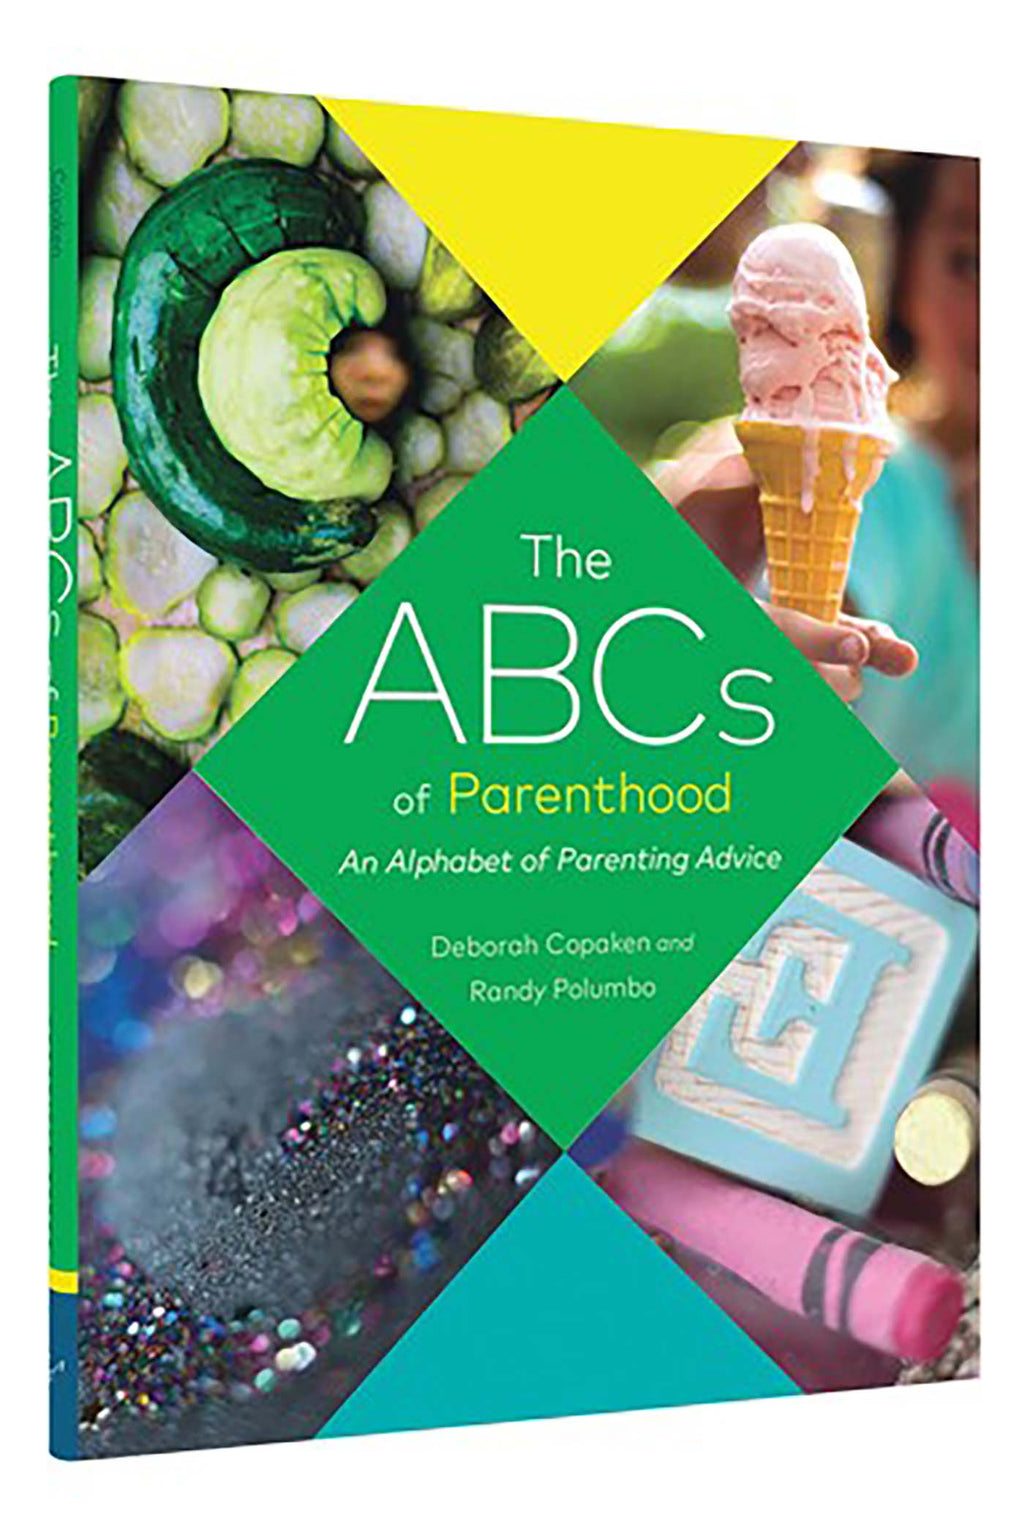 ABC's Of Parenthood